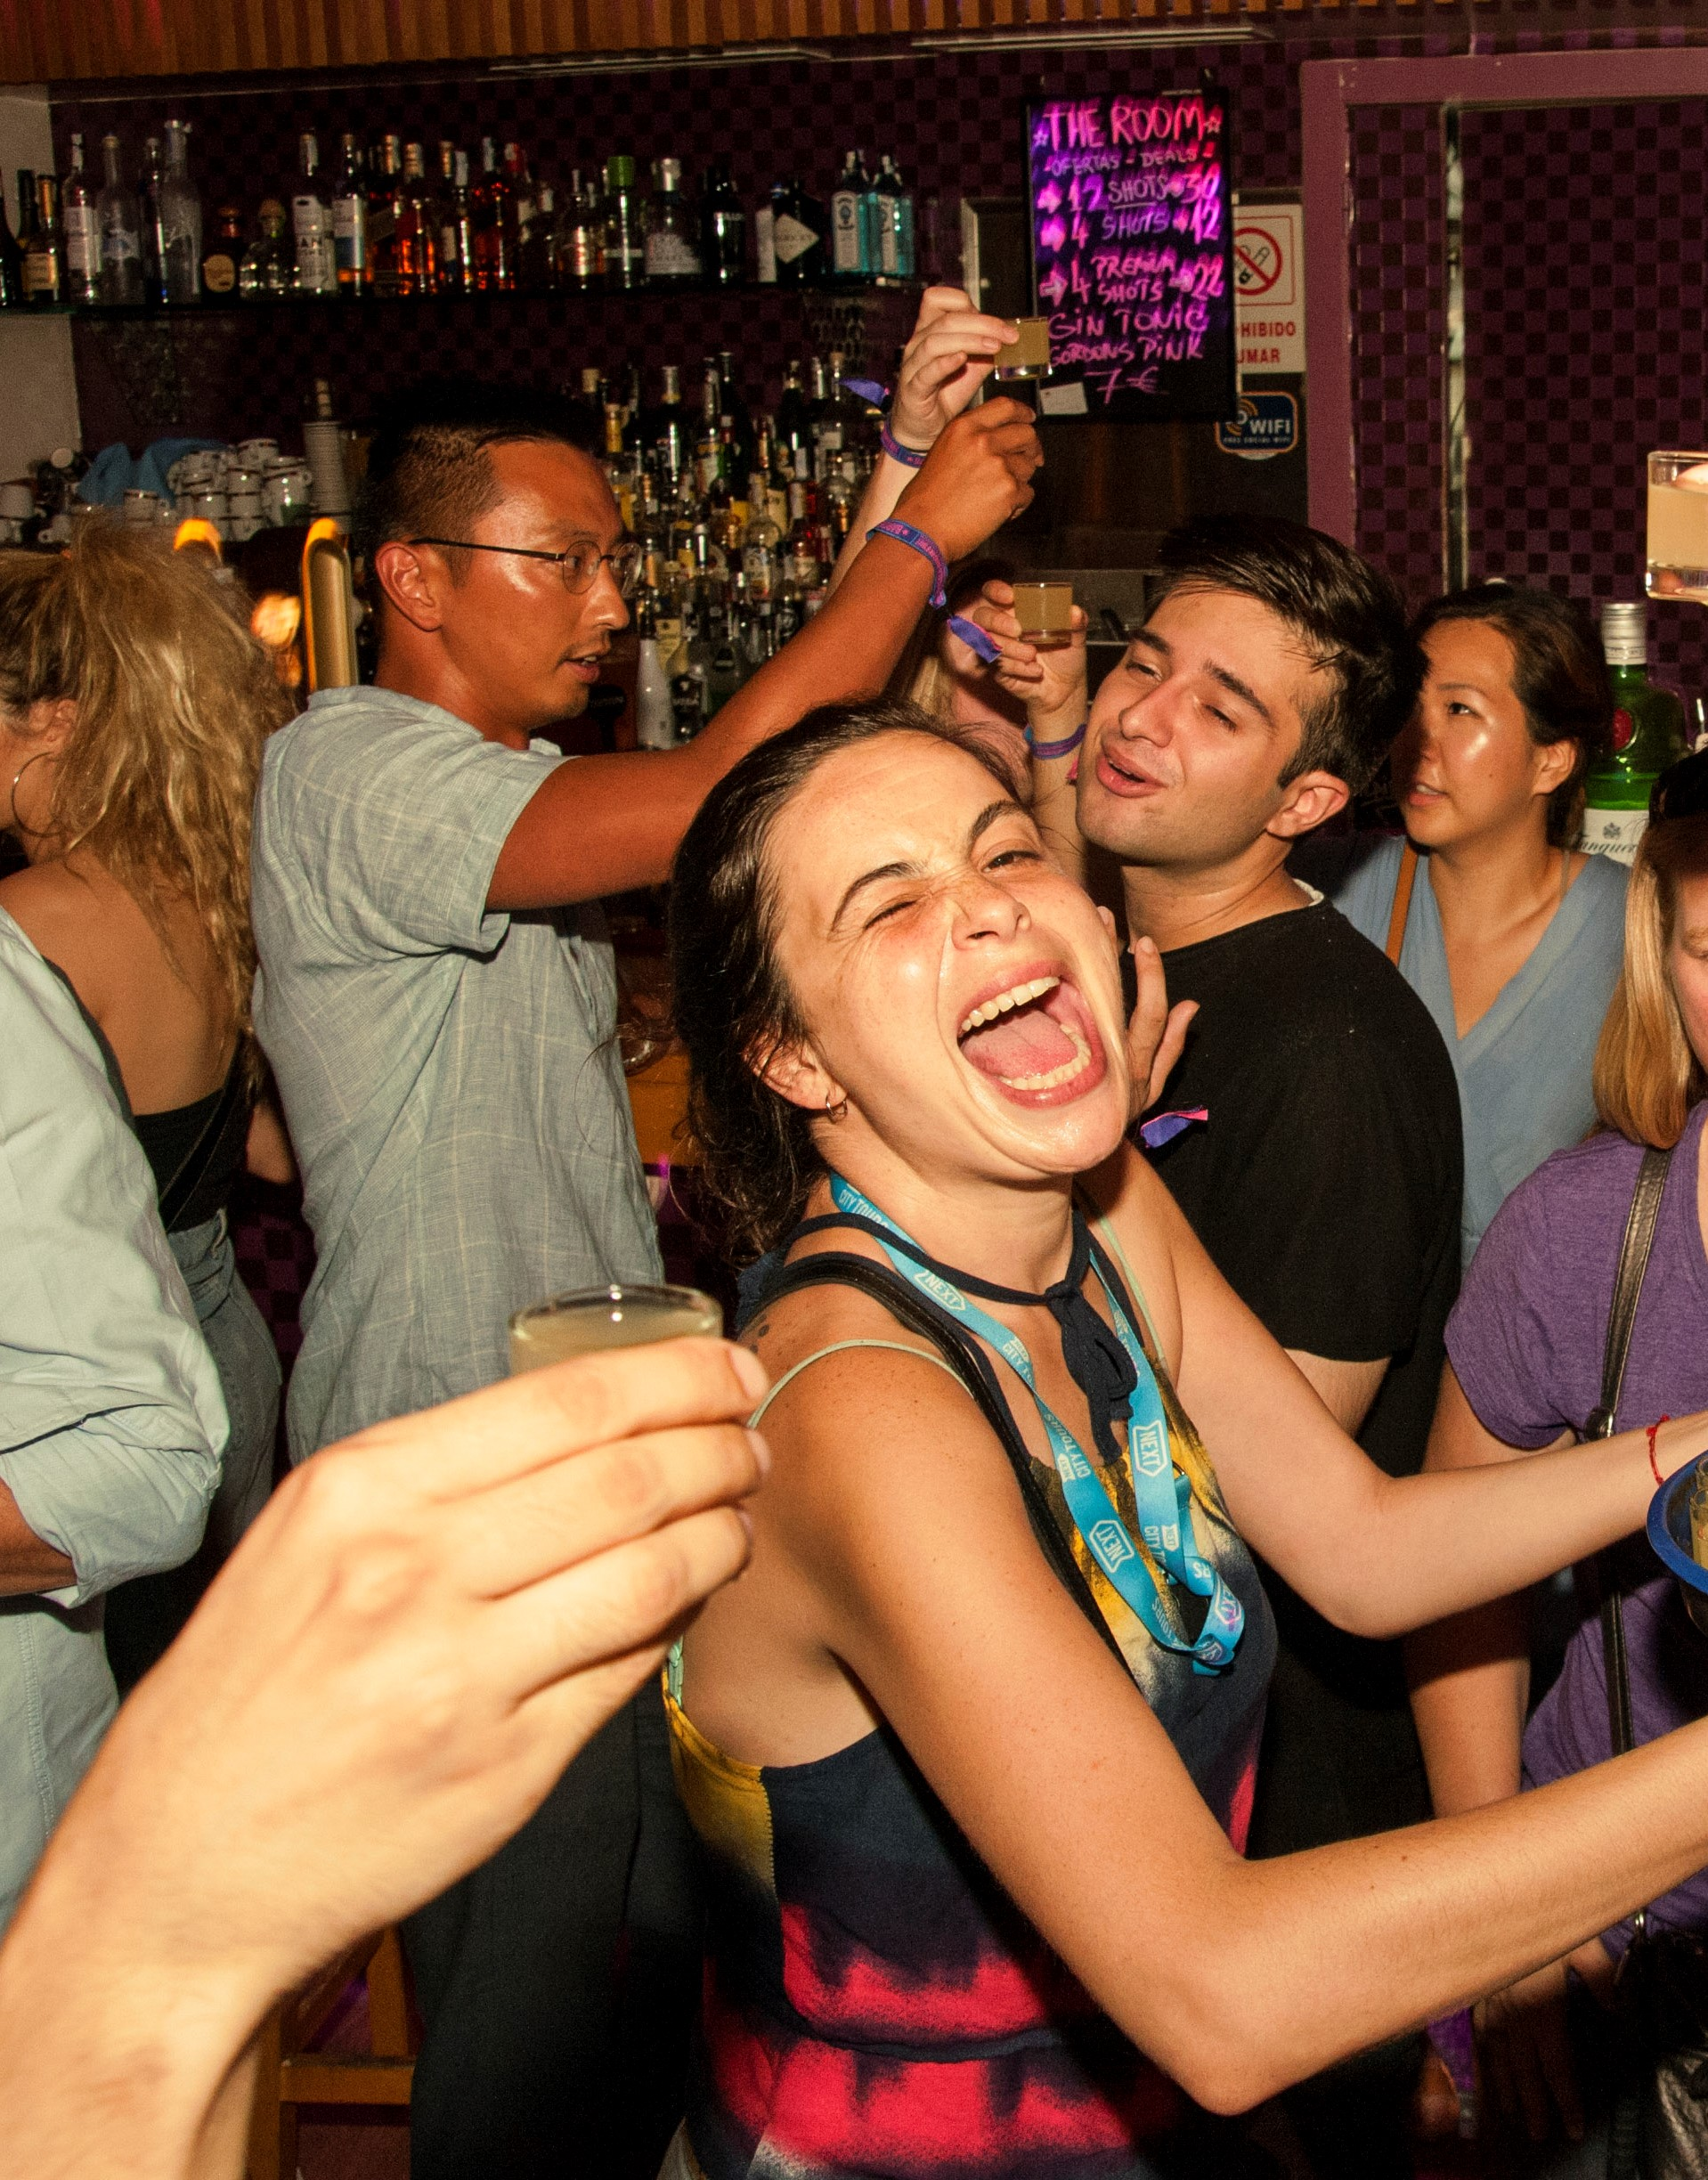 A Barcelona pub crawl guide in the middle of a group of people having shots during a bar crawl in Barcelona